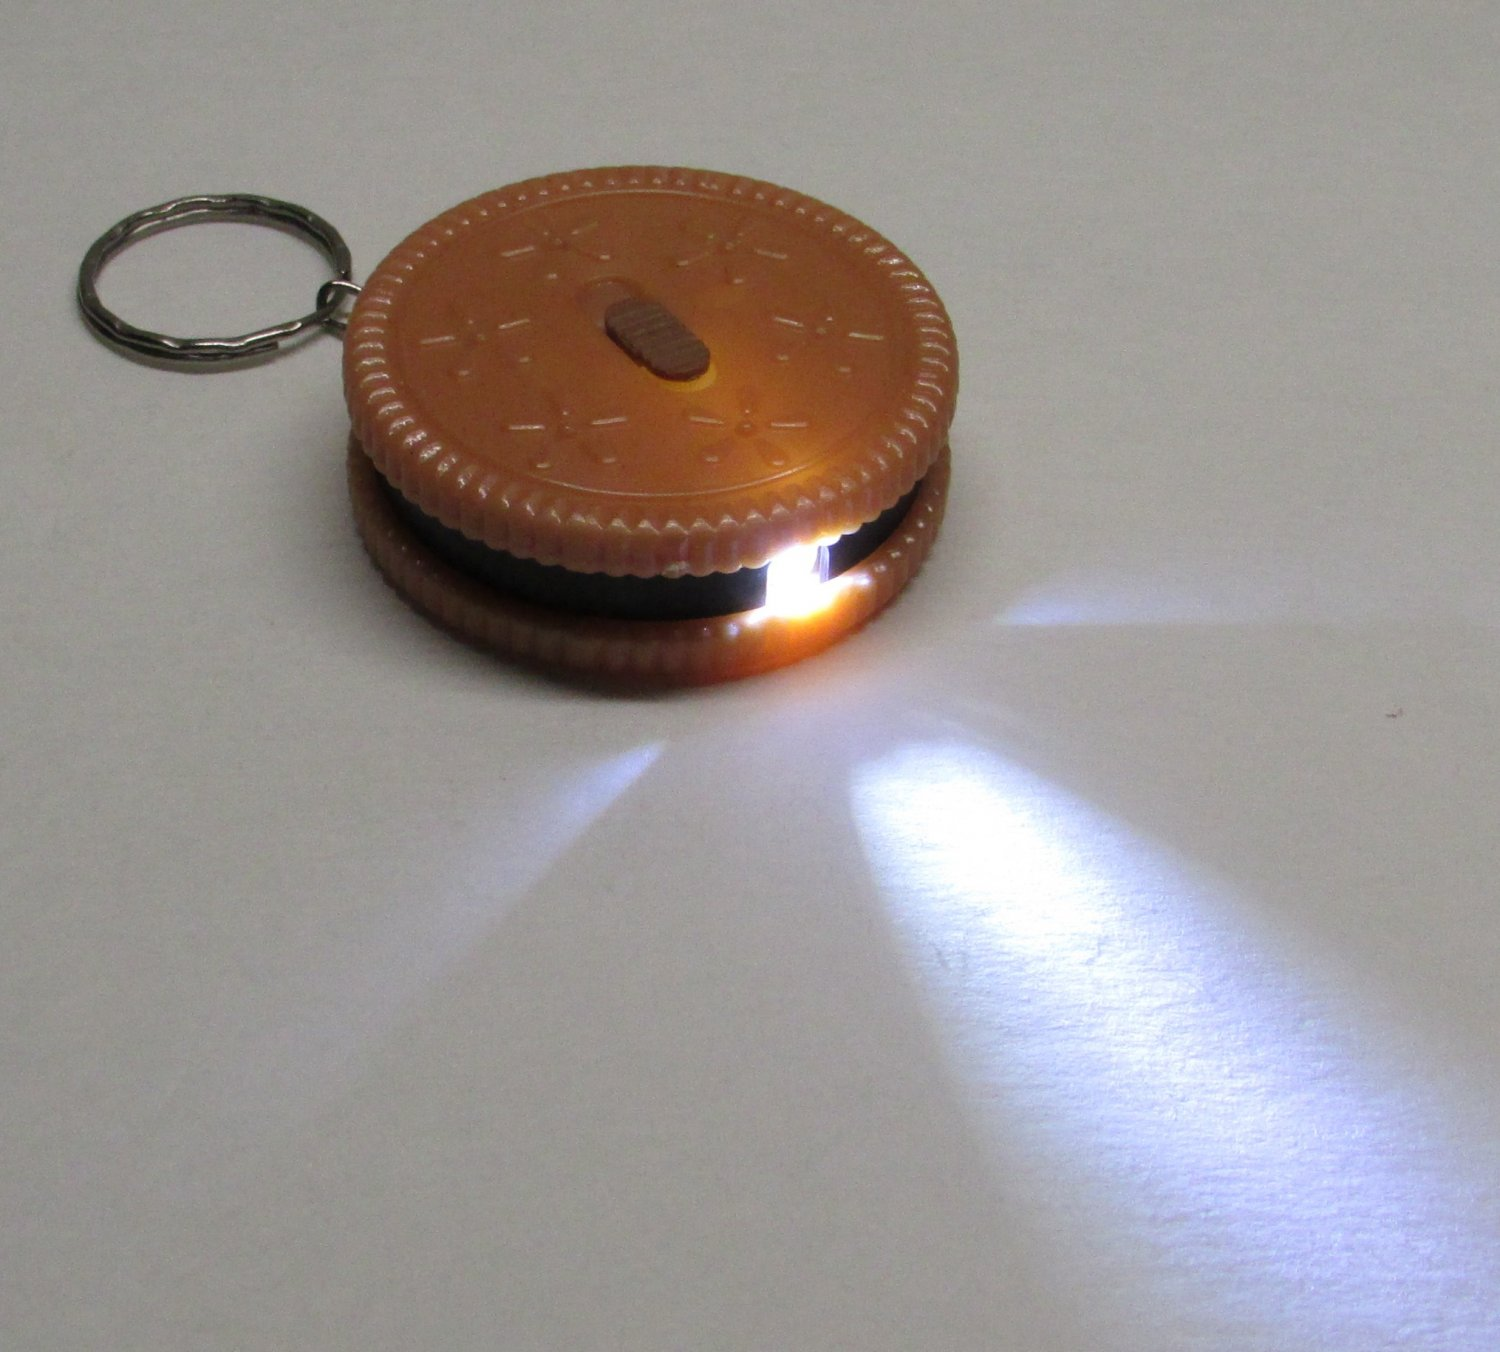 Tan/Black Round COOKIE Biscuit LED Flashlight KEY CHAIN Ring Keychain NEW